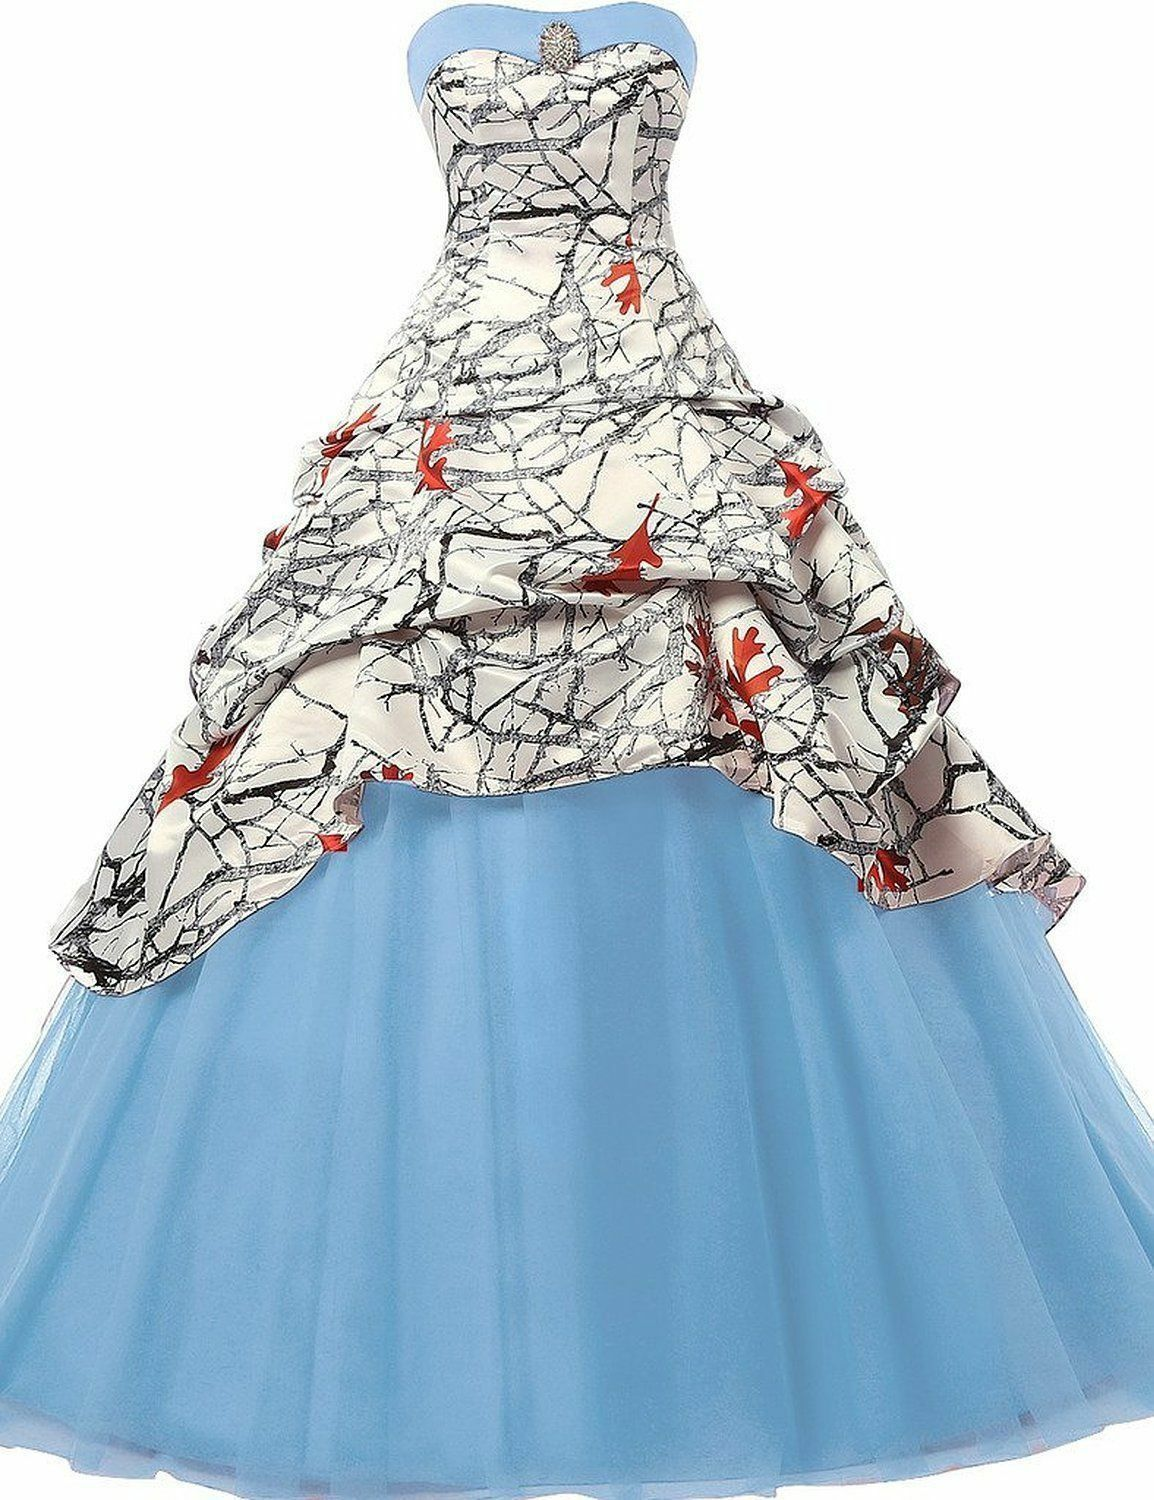 2018 Realtree White Camo Wedding Dresses Tulle Ball Gown Bridal ...